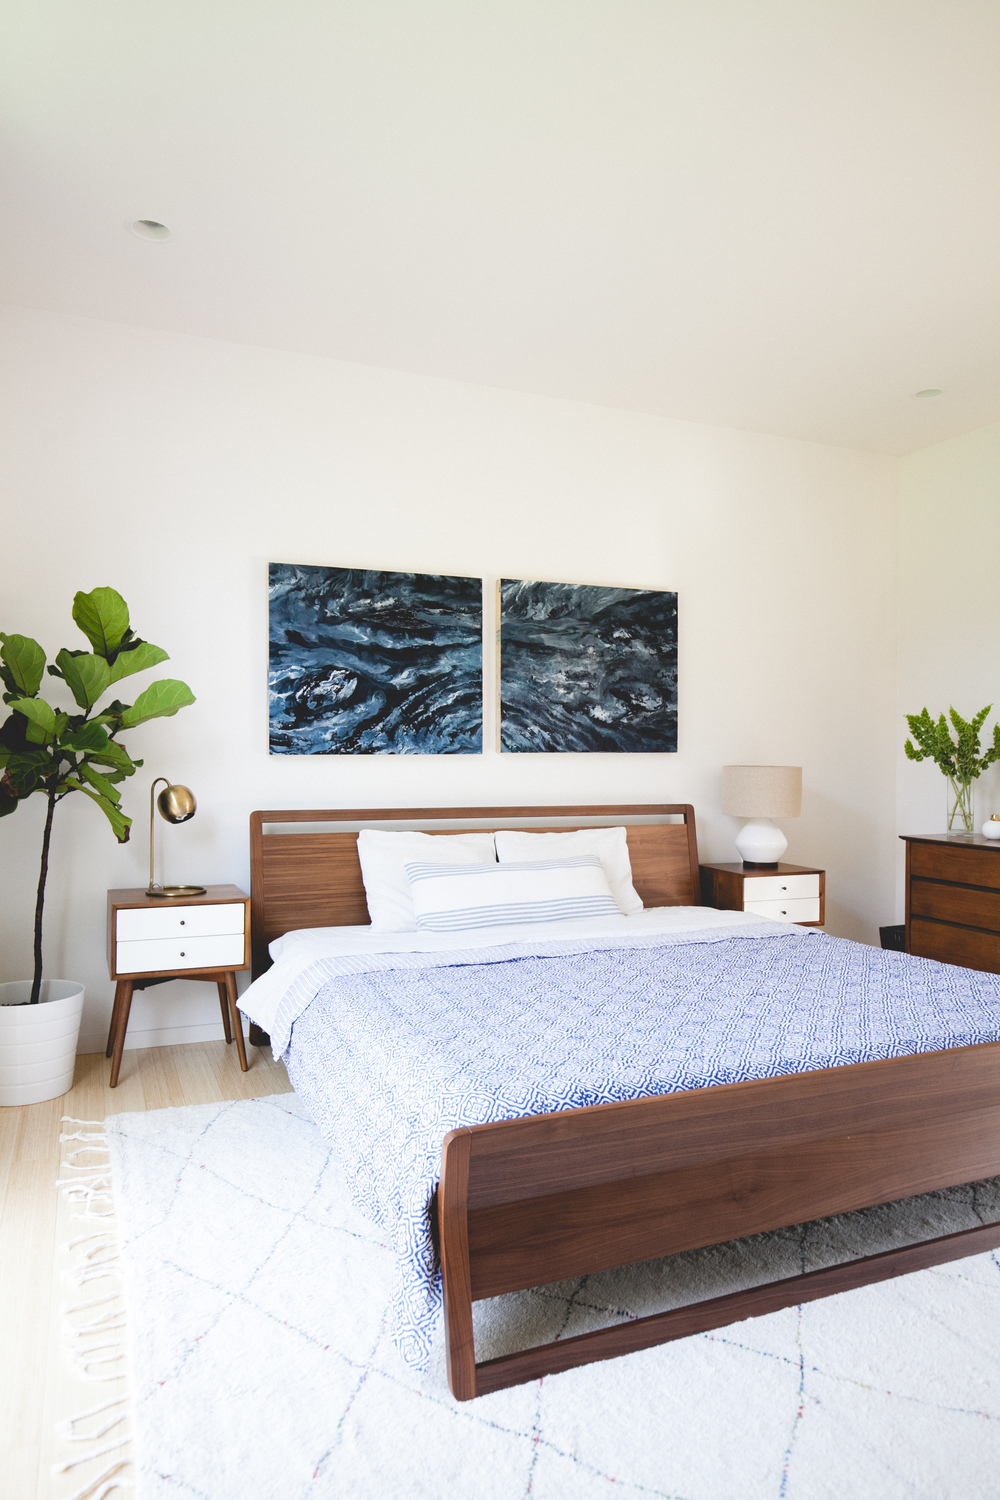 minimal modern pacific northwest bedroom design by the emerald studio, seattle wash